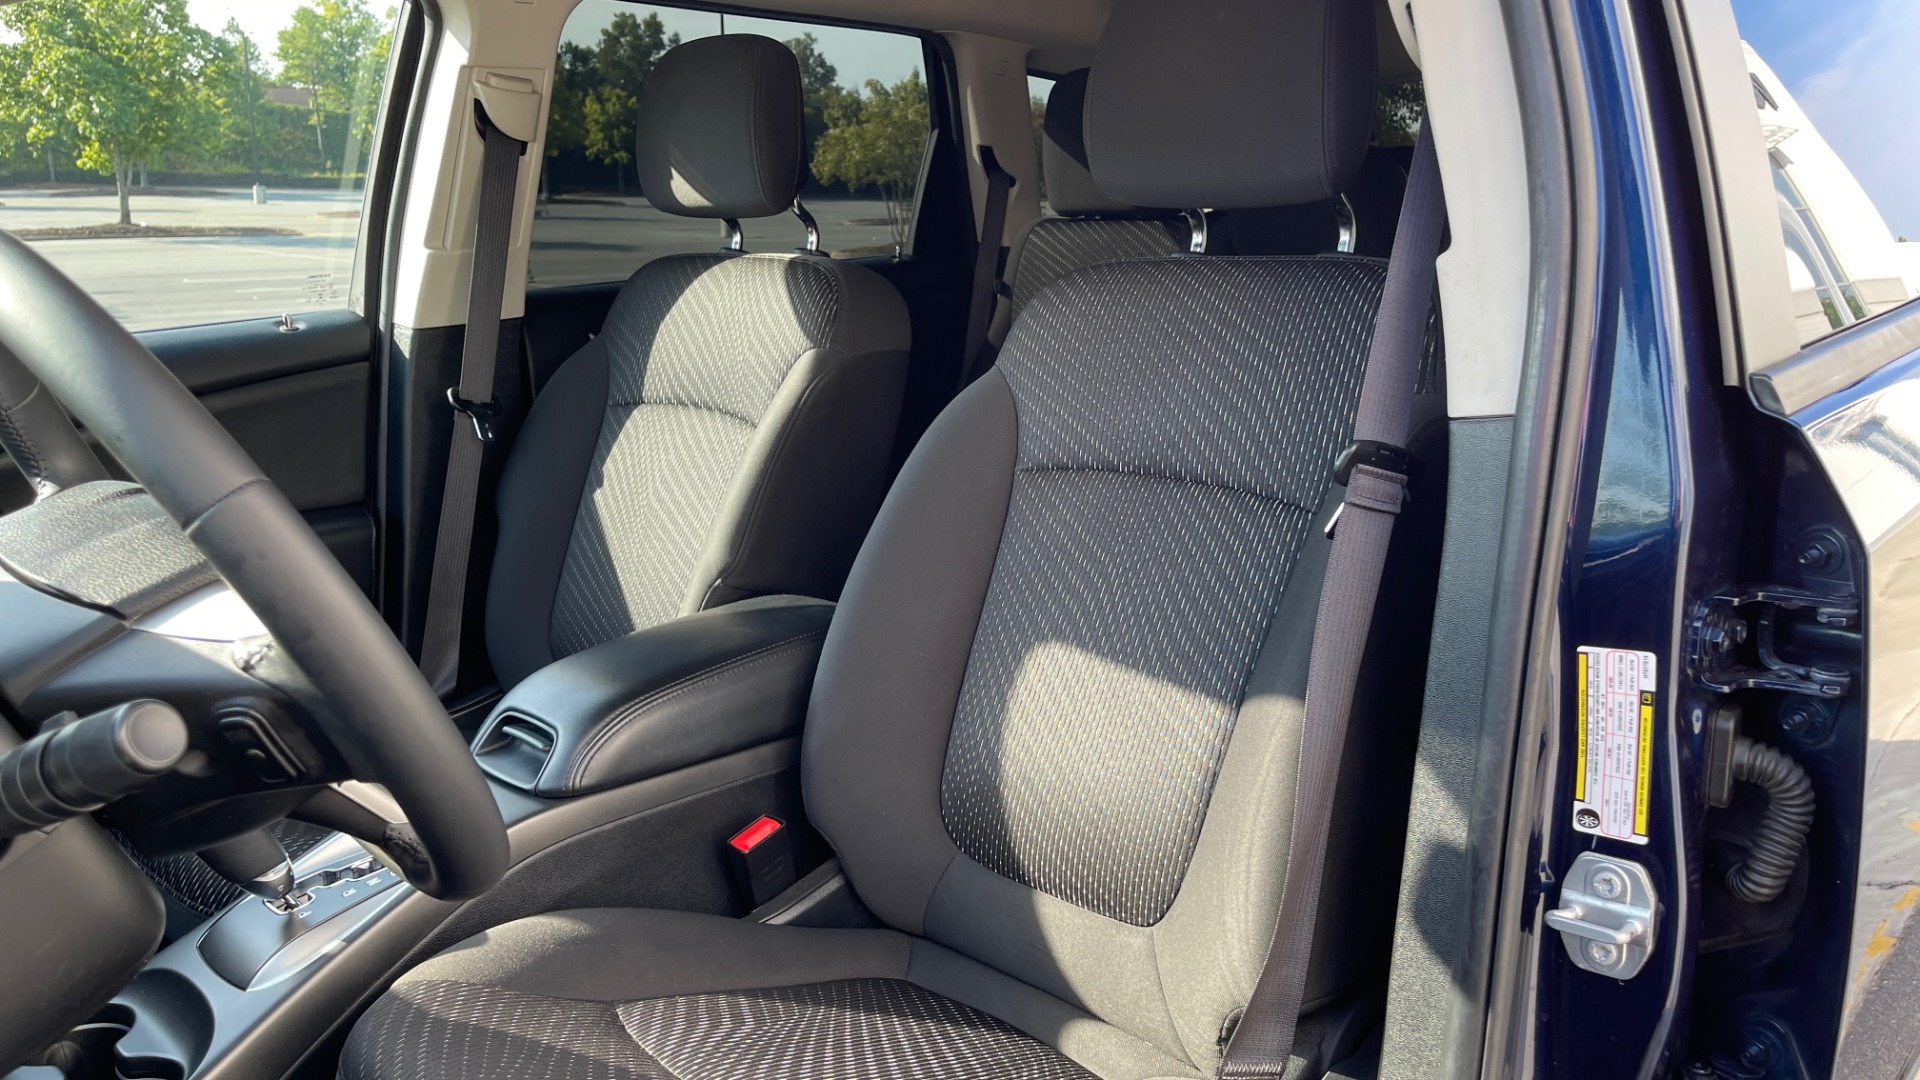 Used 2017 Dodge JOURNEY SXT PREMIUM / 2.4L / 4-SPD AUTO / KEYLESS-GO / 3-ROW / 19IN WHEELS for sale $15,995 at Formula Imports in Charlotte NC 28227 27